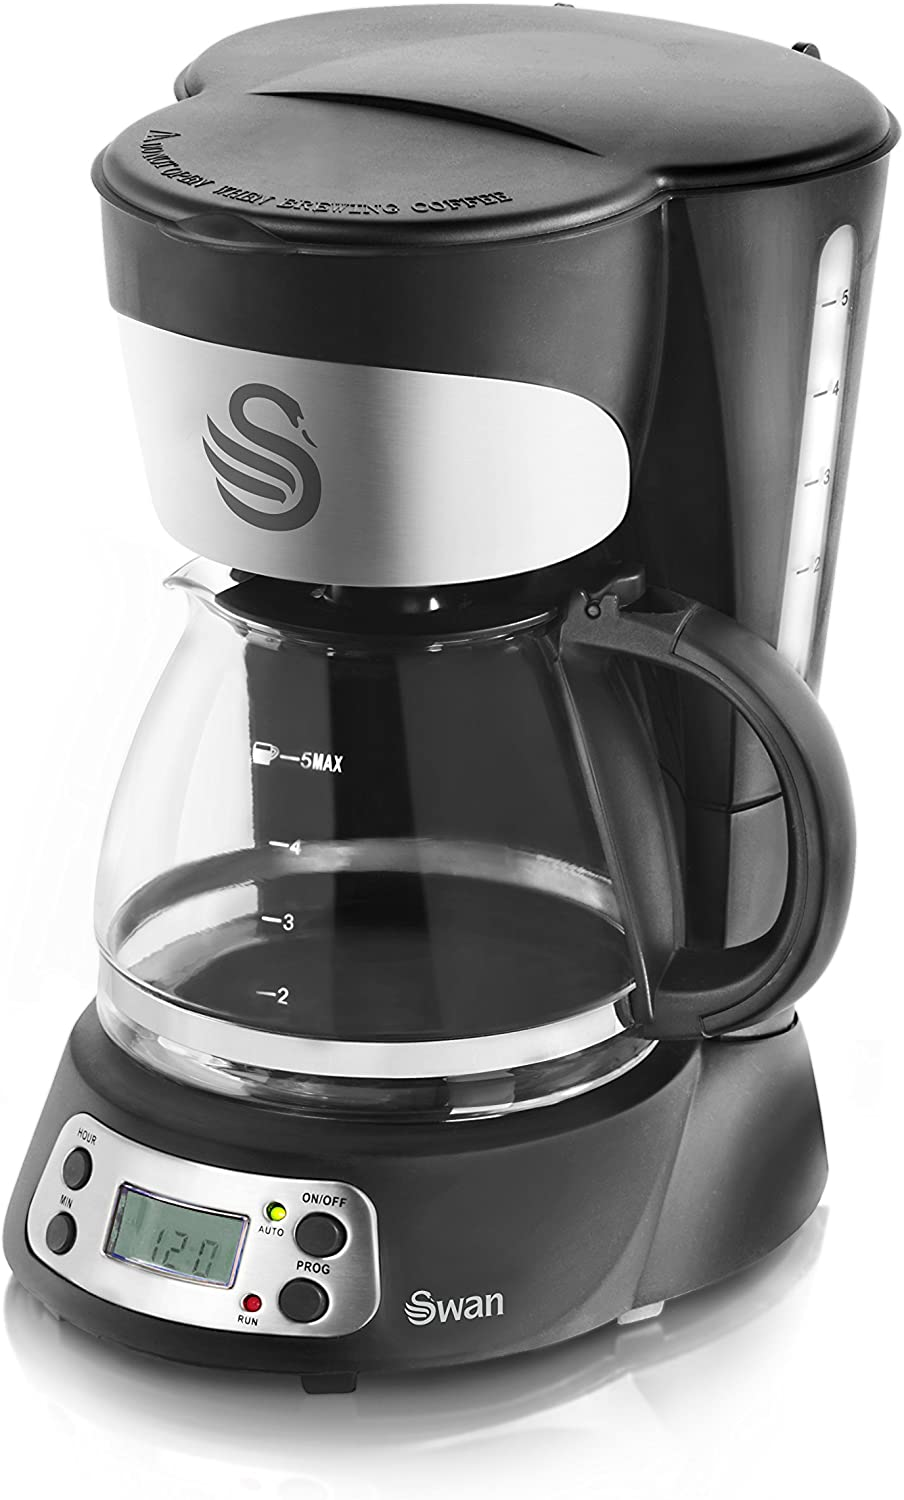 Swan 750ml Programmable Coffee Maker with Anti Drip Function, 700w, Black